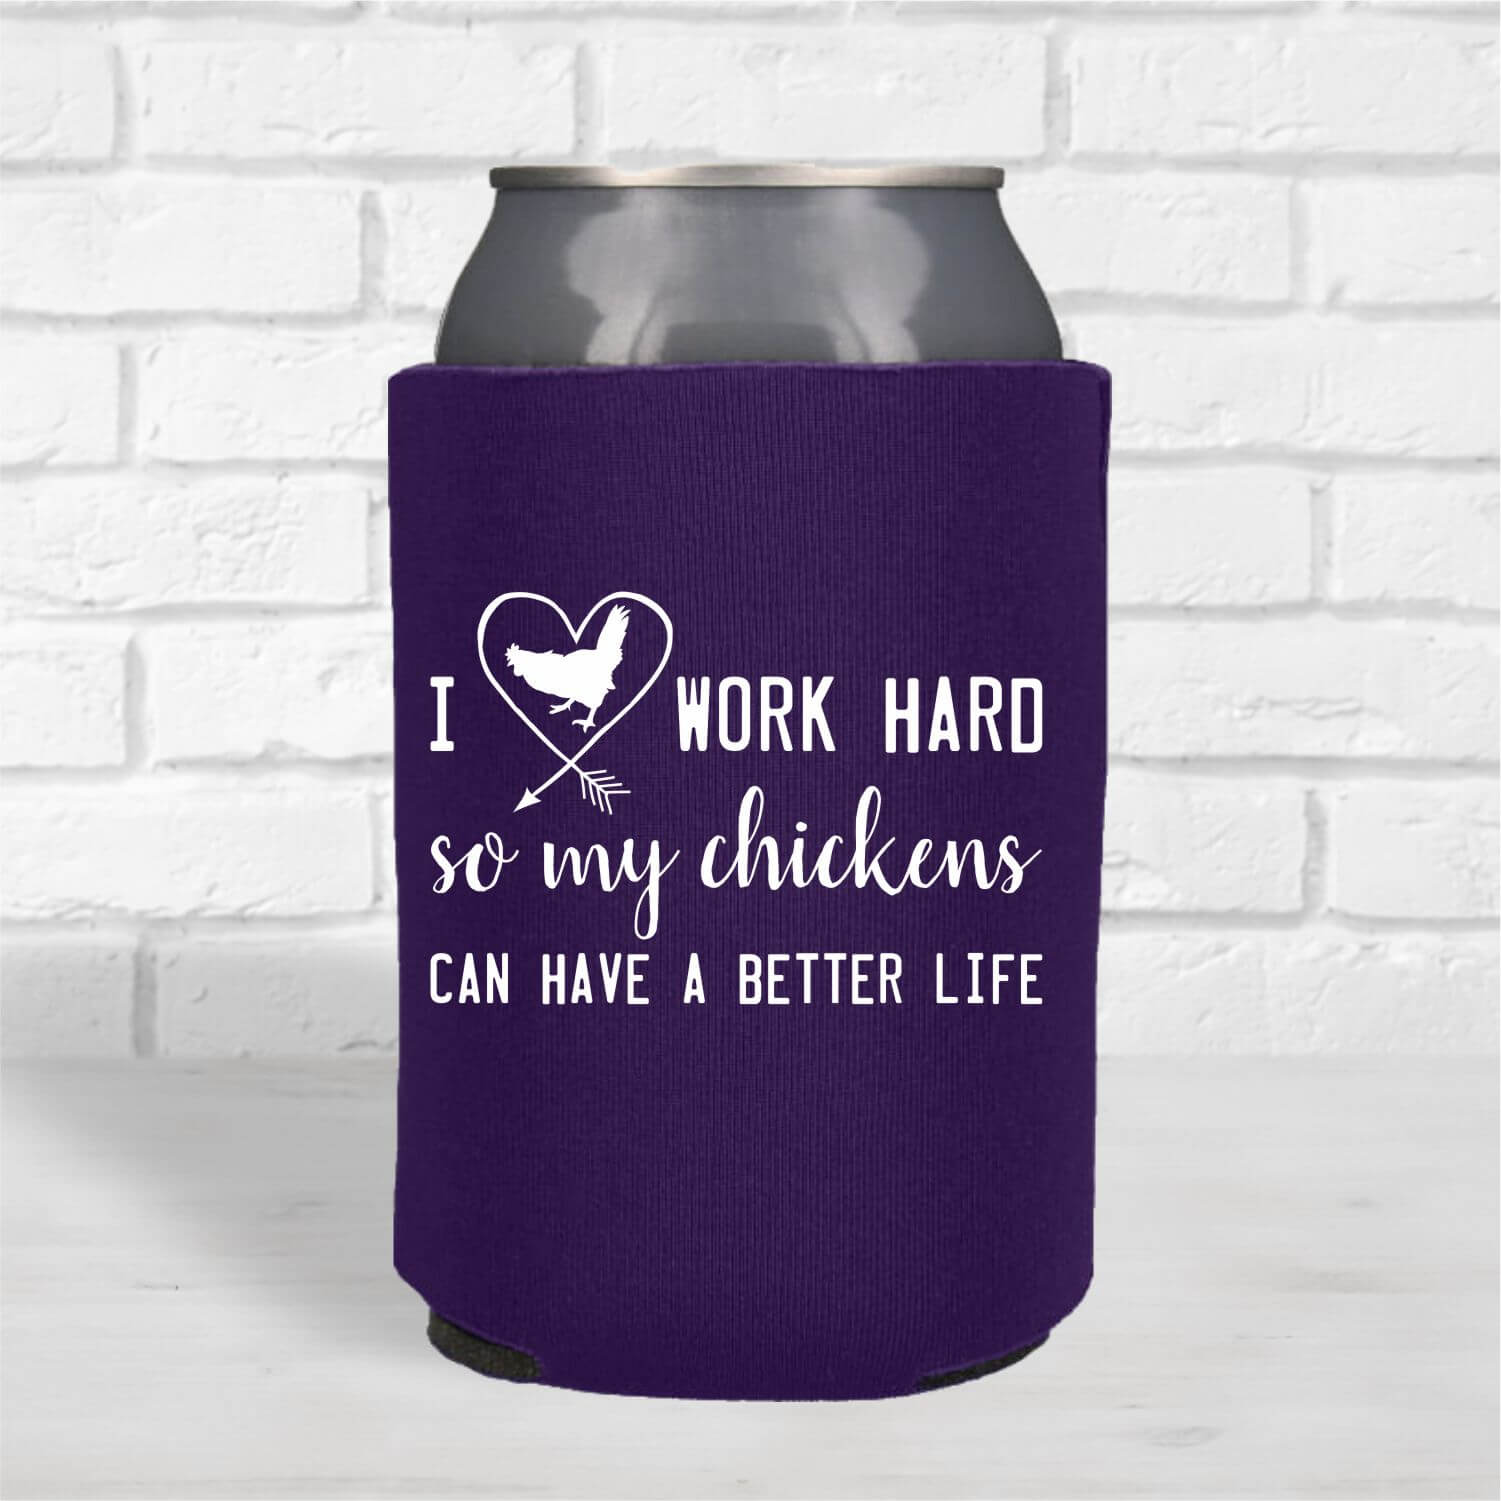 Can Coolers-Work-Hard-Chickens